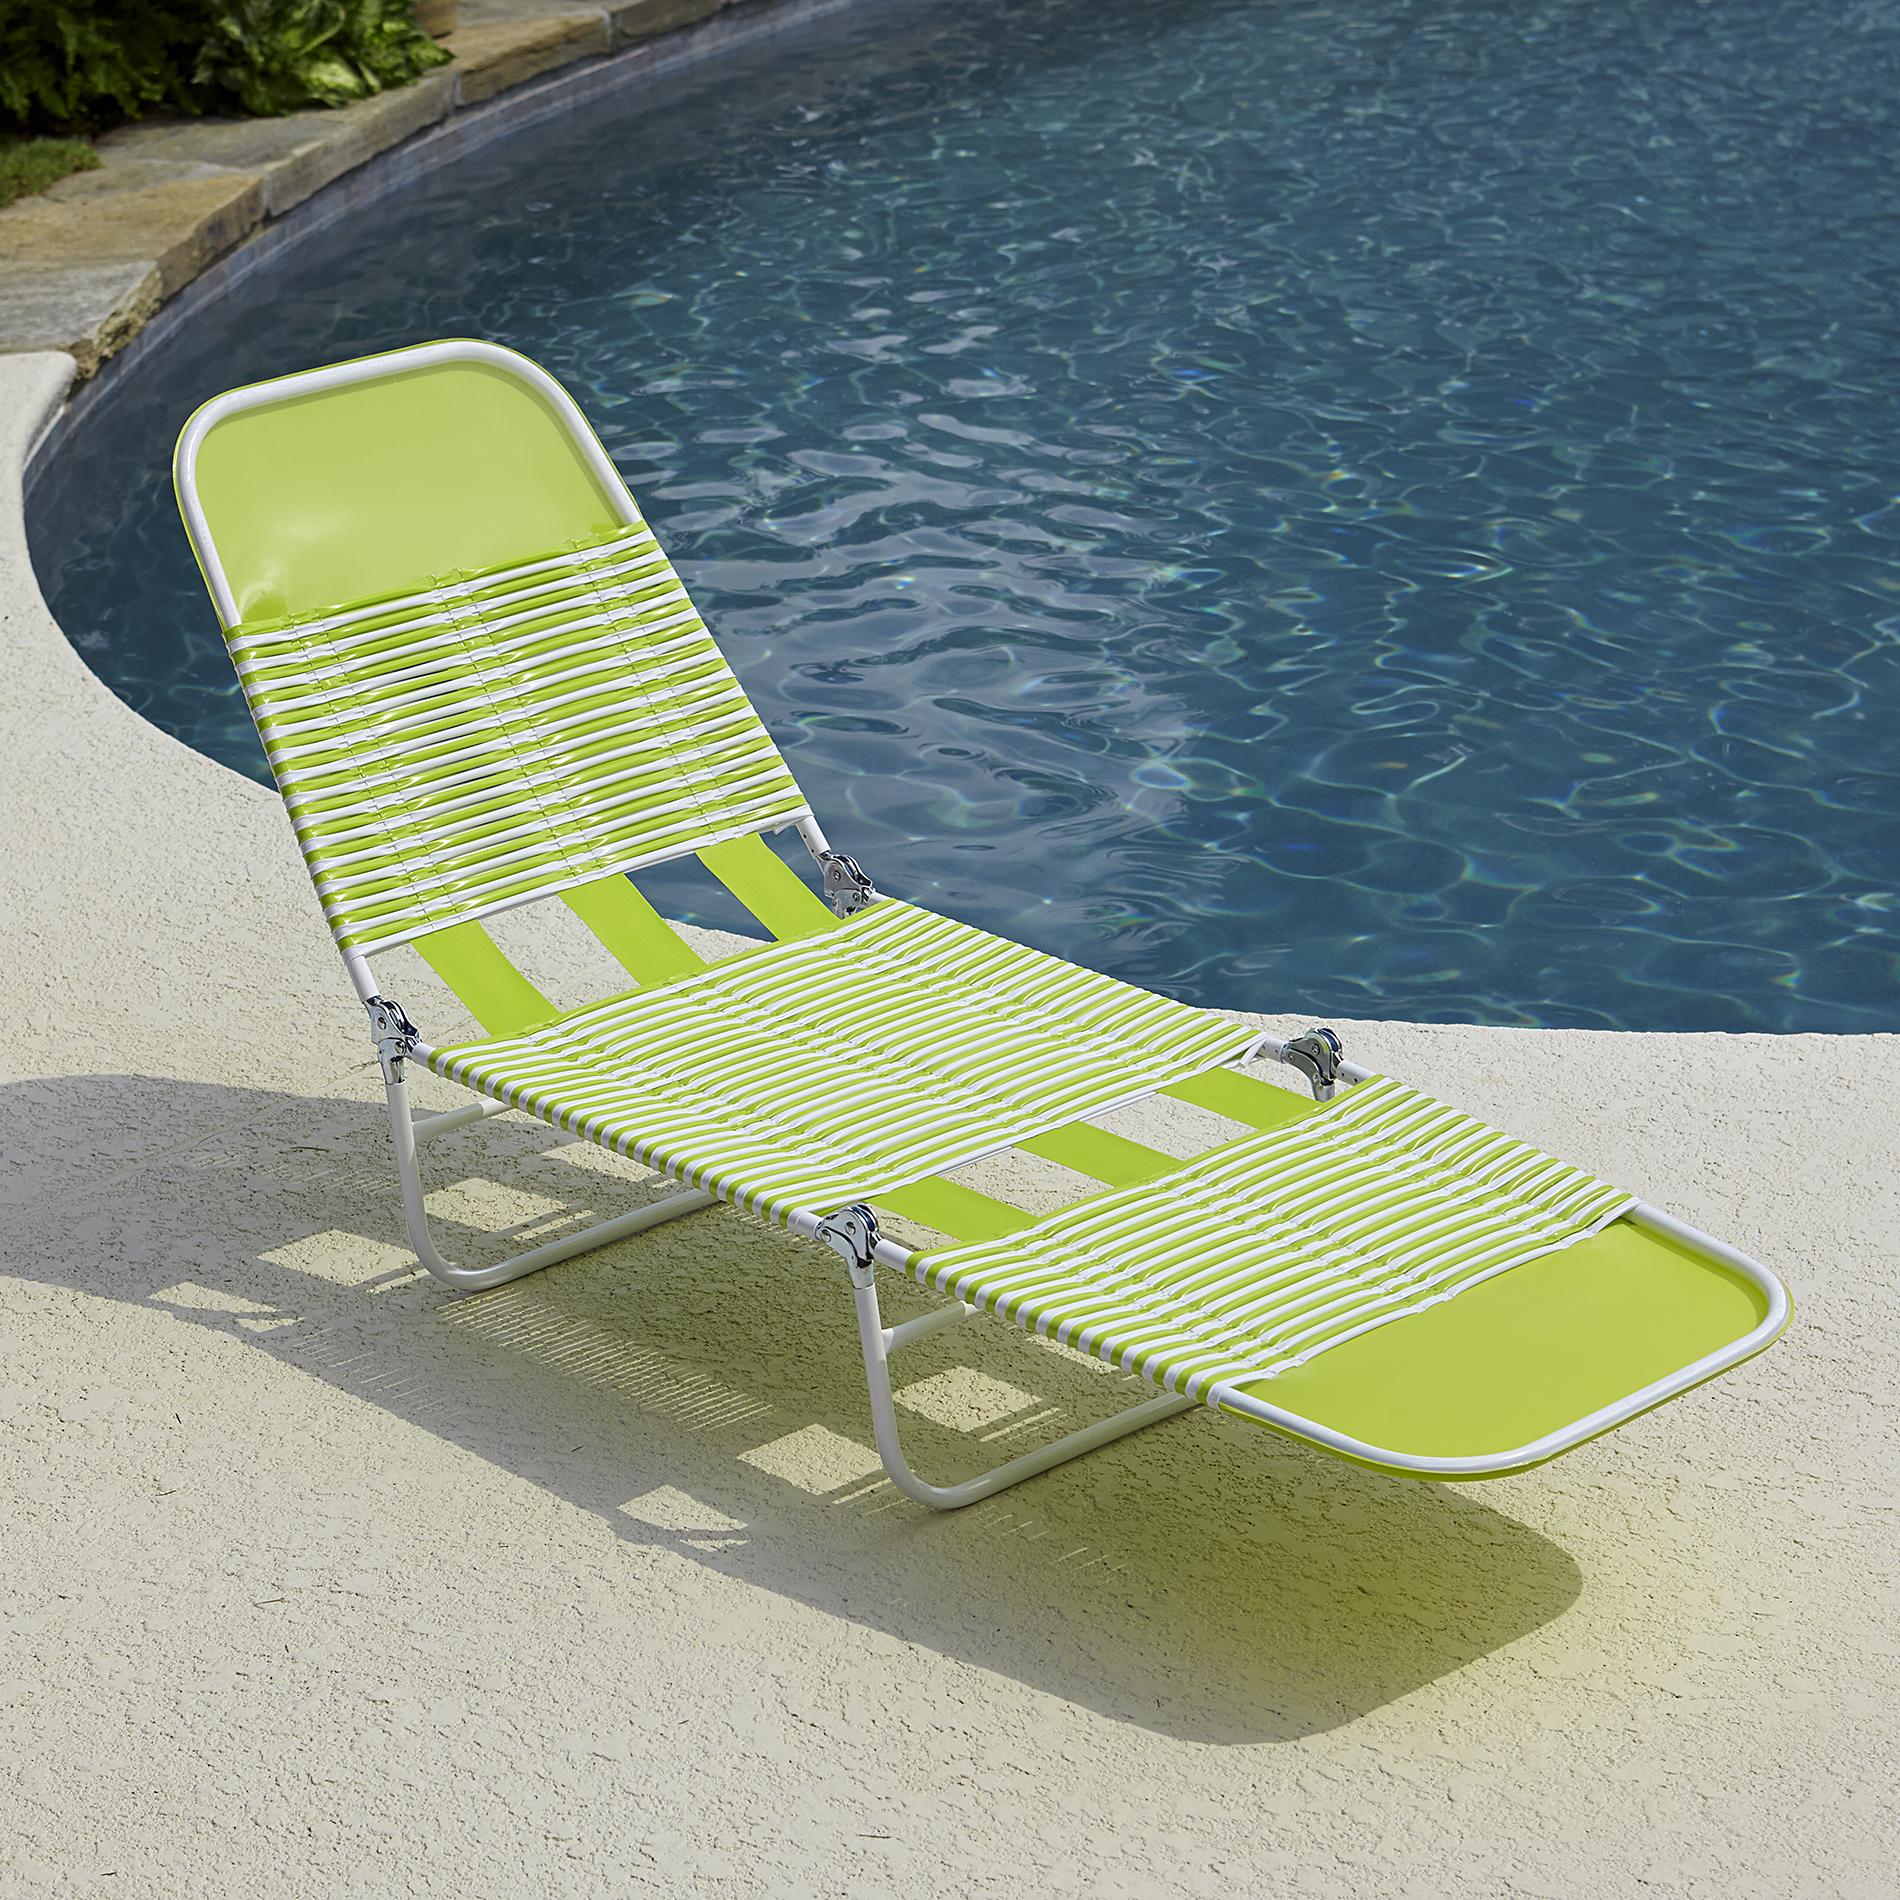 pvc lounge chair race car office australia chaise green outdoor living patio furniture chairs